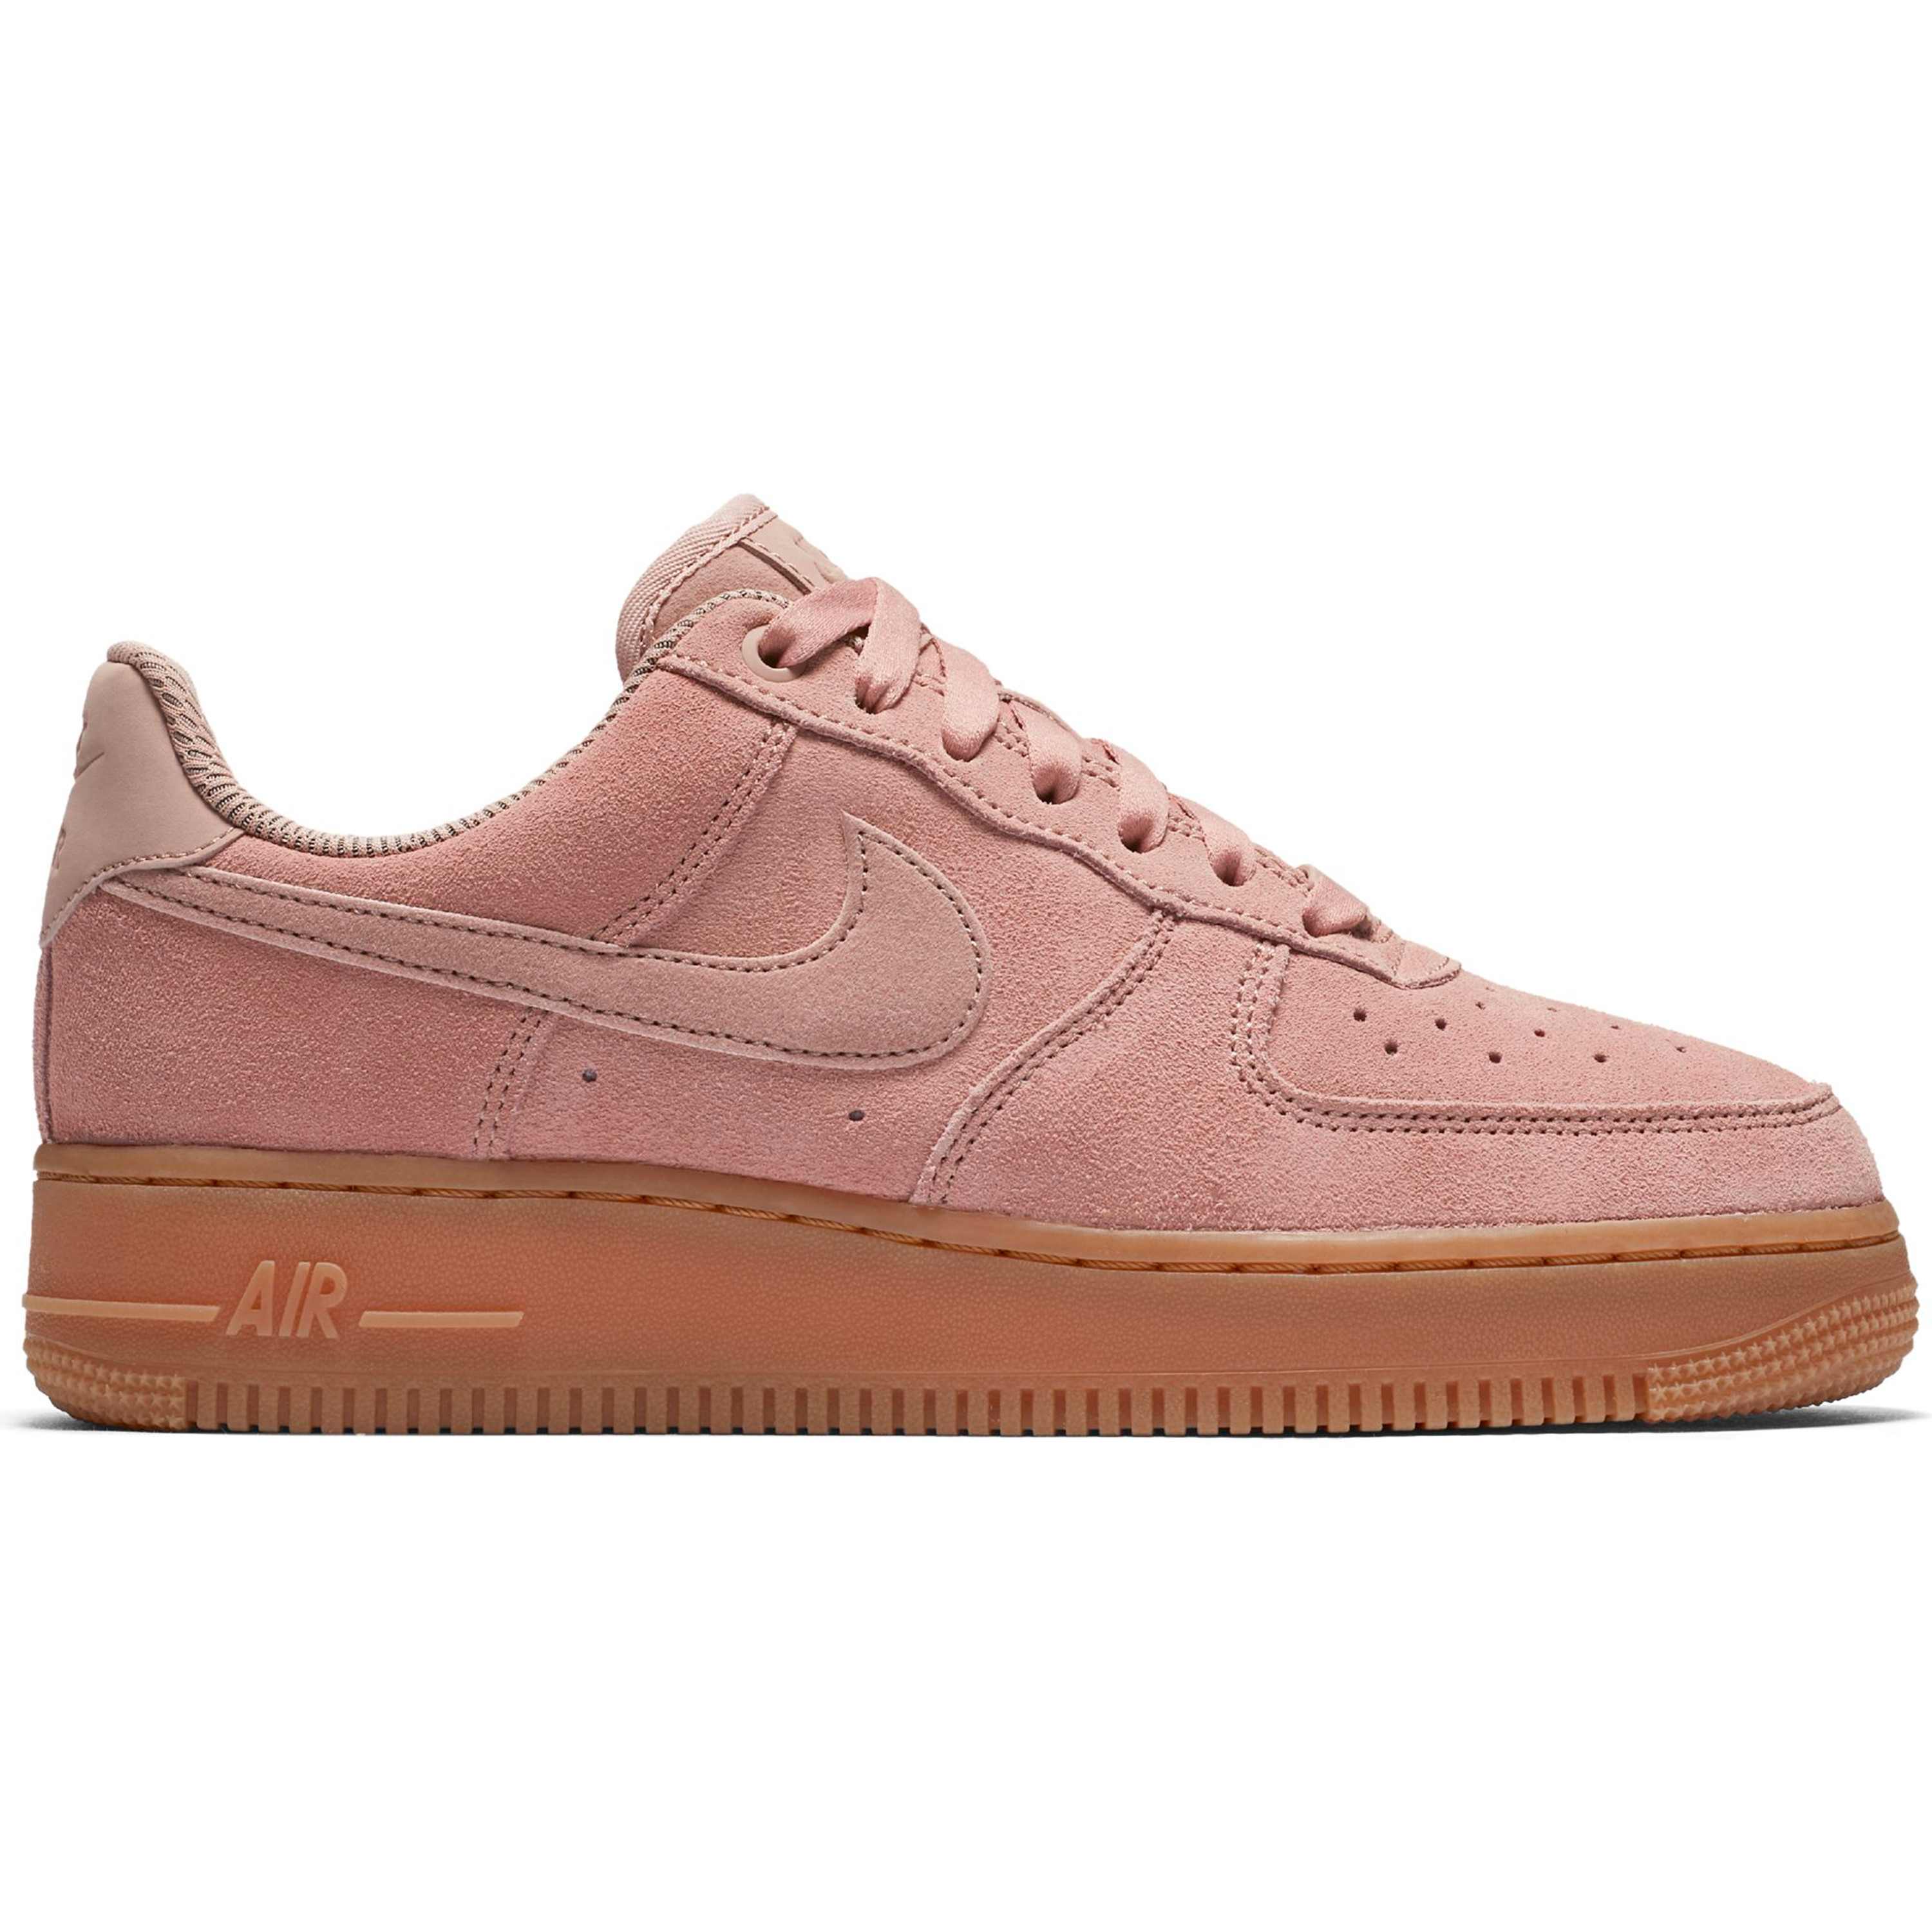 Nike Air Force 1 '07 SE Freizeit-Sneakers für Damen in rosa